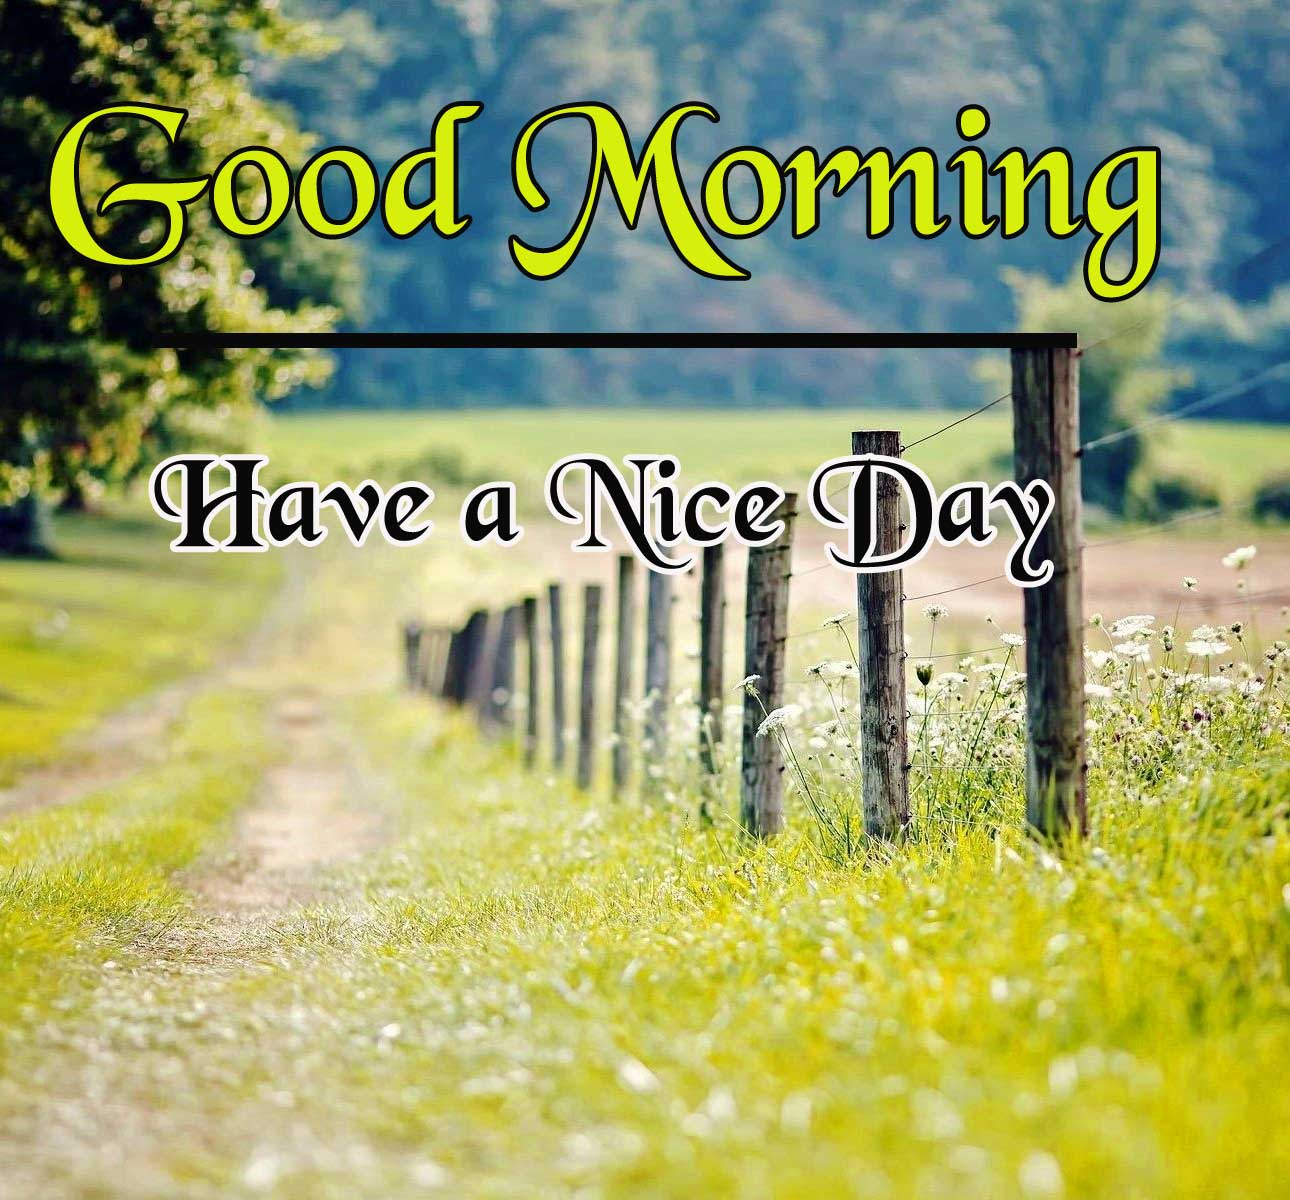 Good Morning Pictures Wallpaper Free